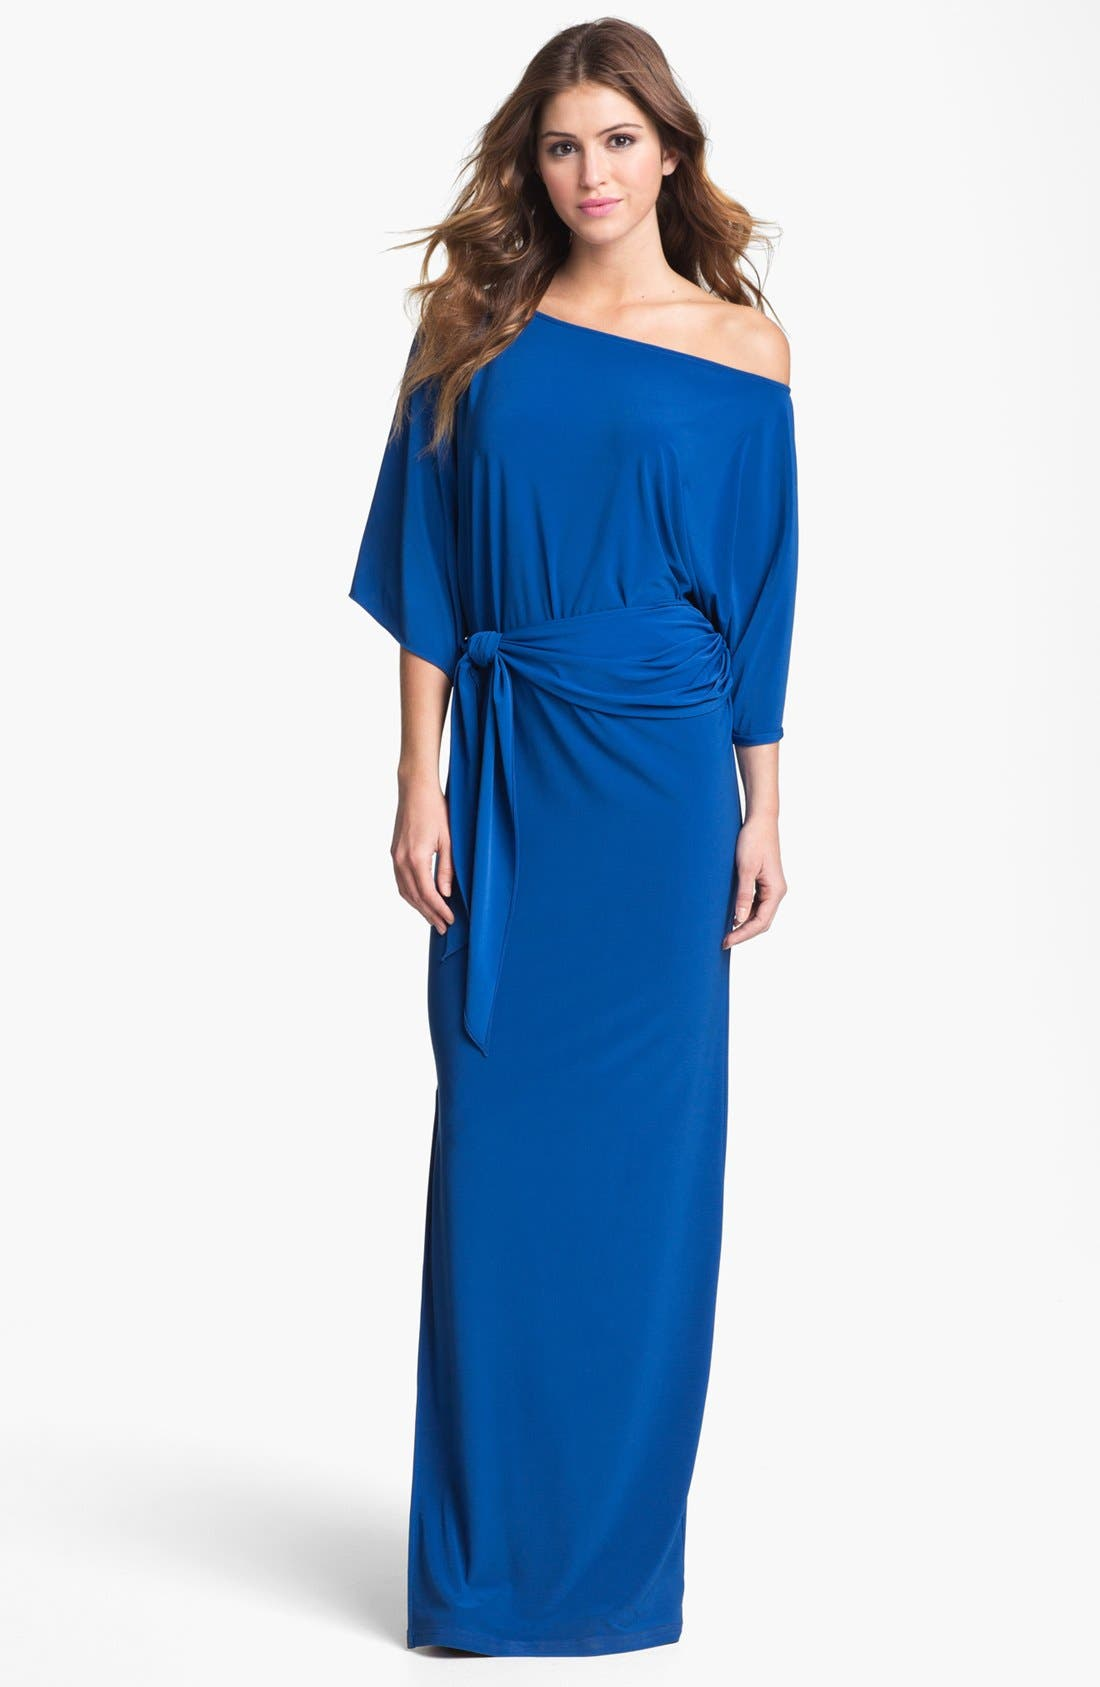 Alternate Image 1 Selected - Abi Ferrin 'Nicole' Off Shoulder Jersey Maxi Dress